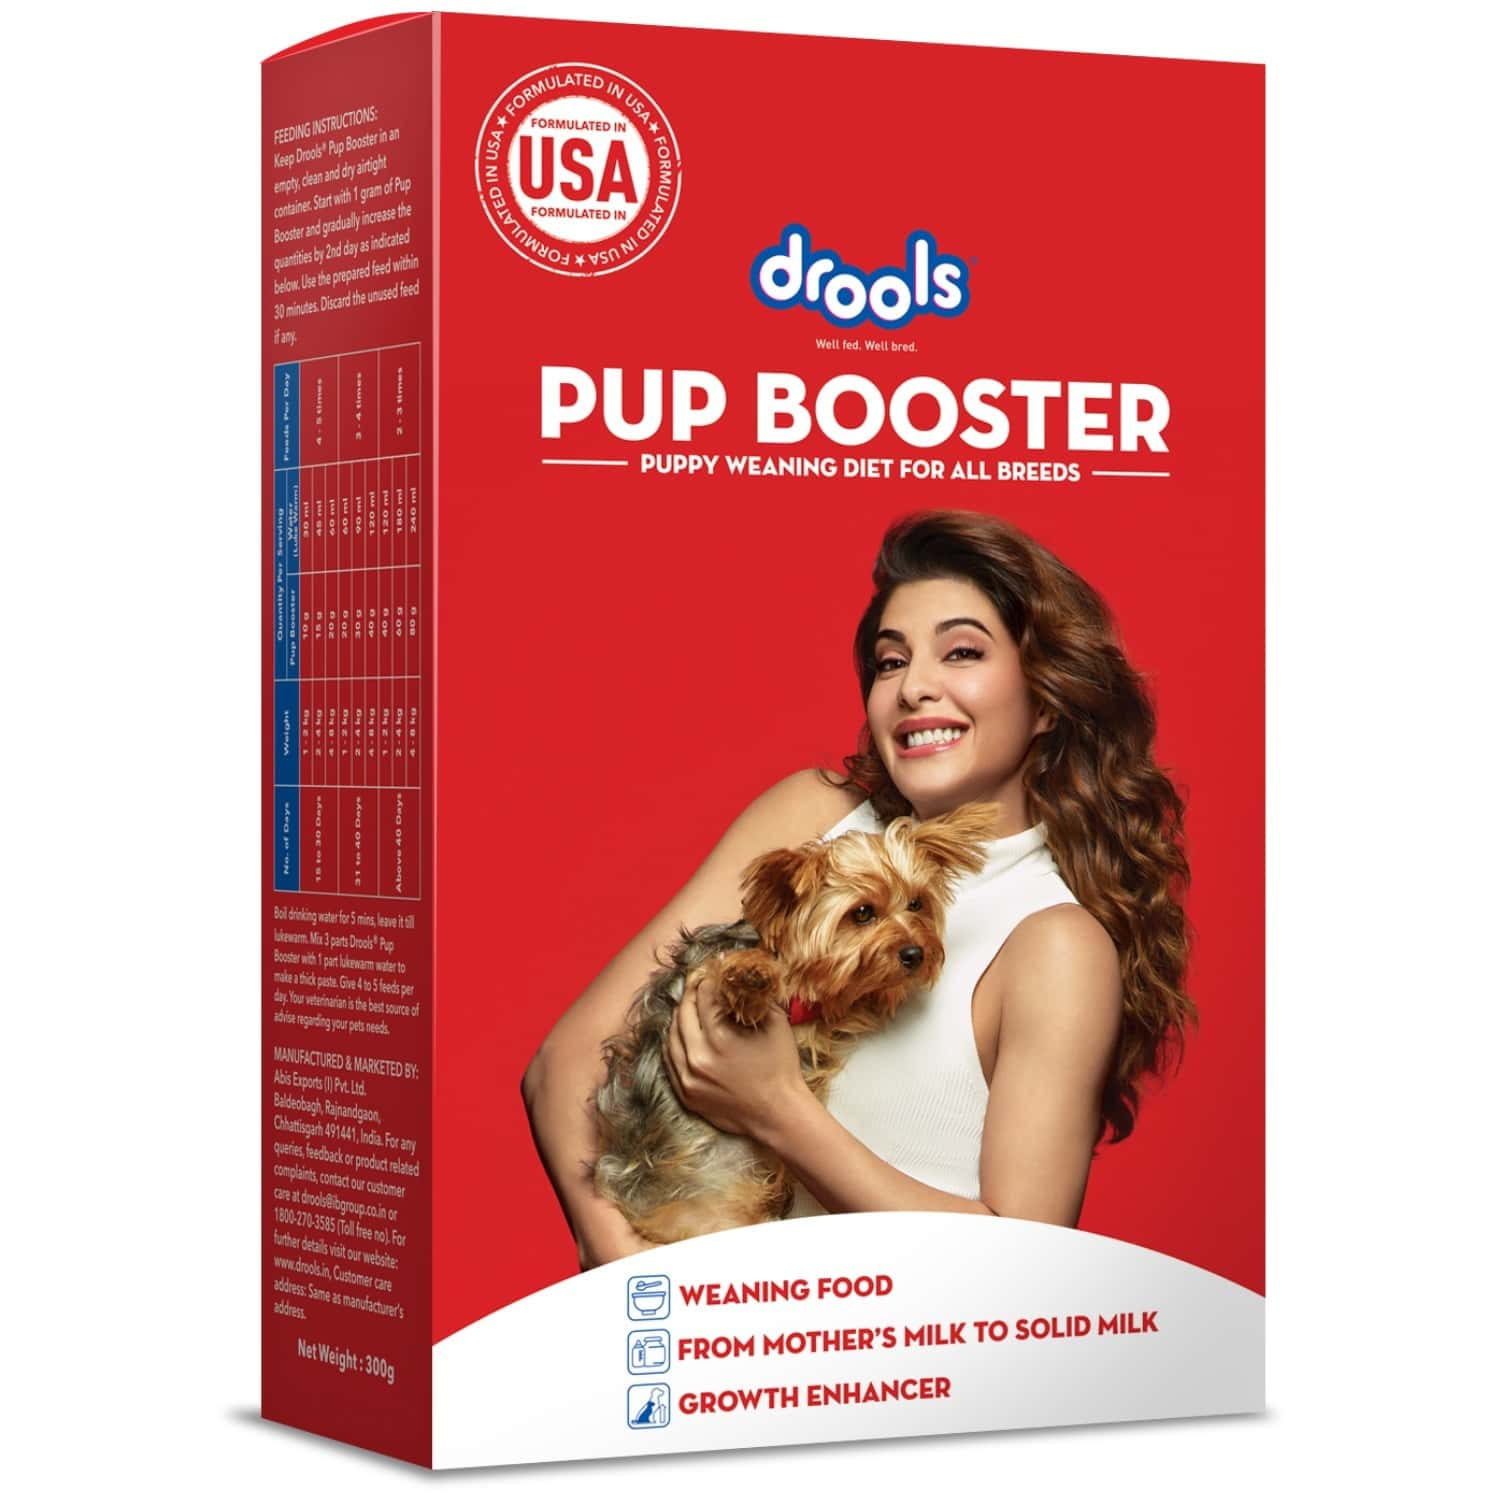 Pup Booster Puppy Weaning Diet For All Breeds 300g